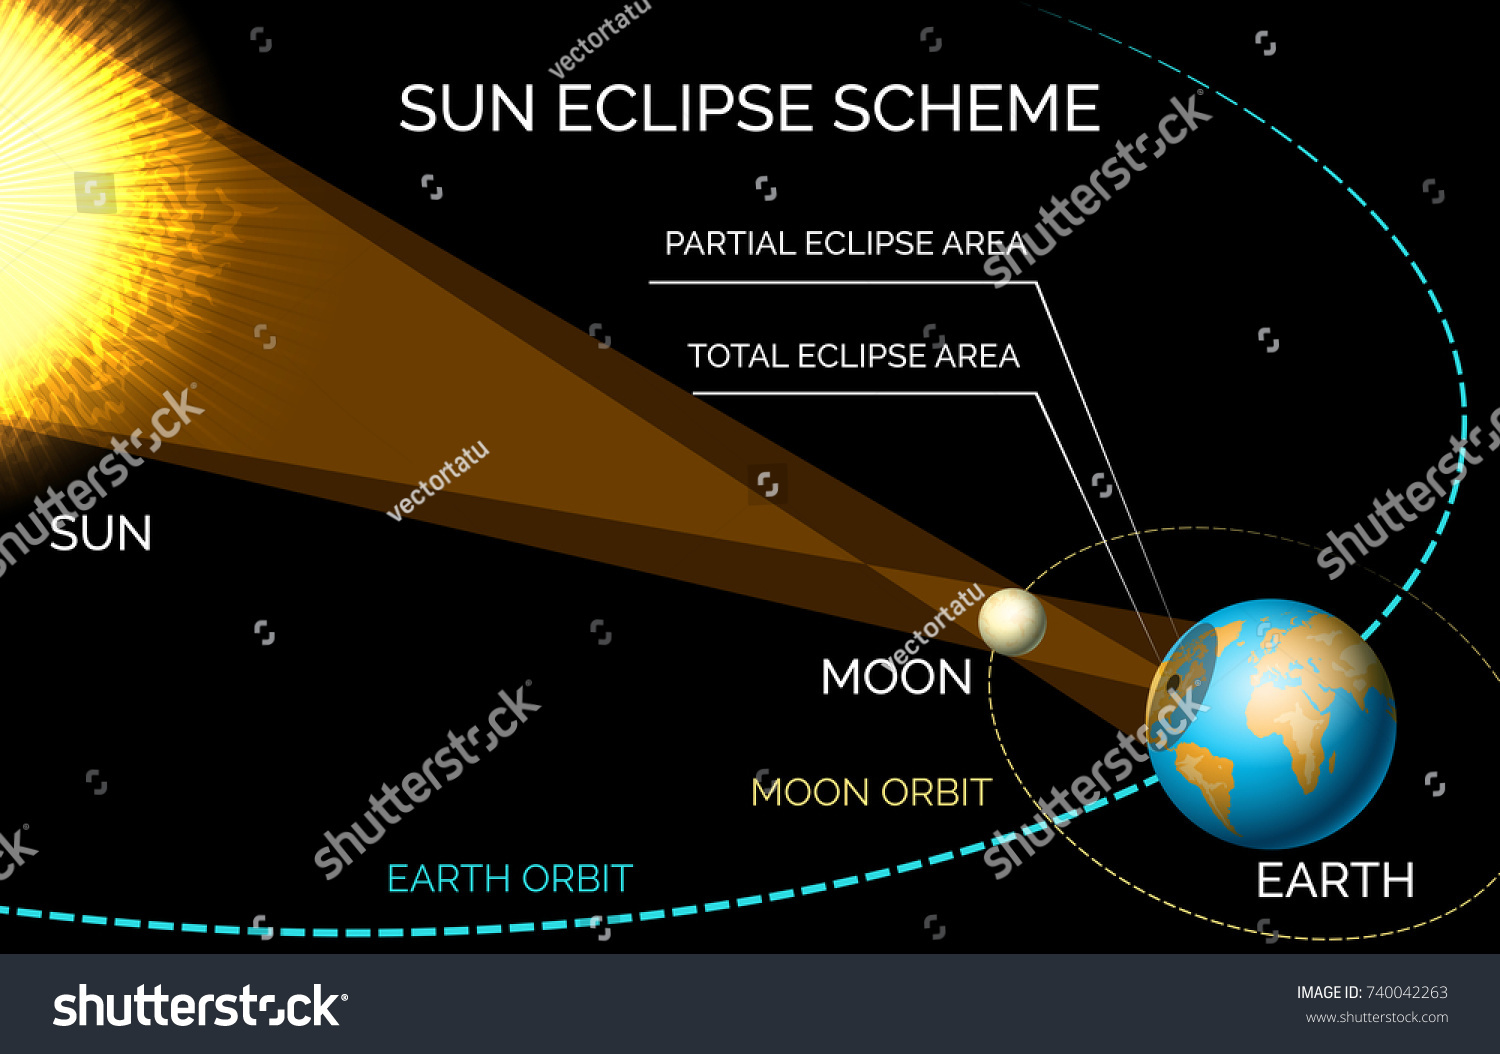 Solar eclipse diagram sun moon orbiting stock vector 740042263 solar eclipse diagram sun and moon orbiting eclipse scheme vector illustration pooptronica Gallery